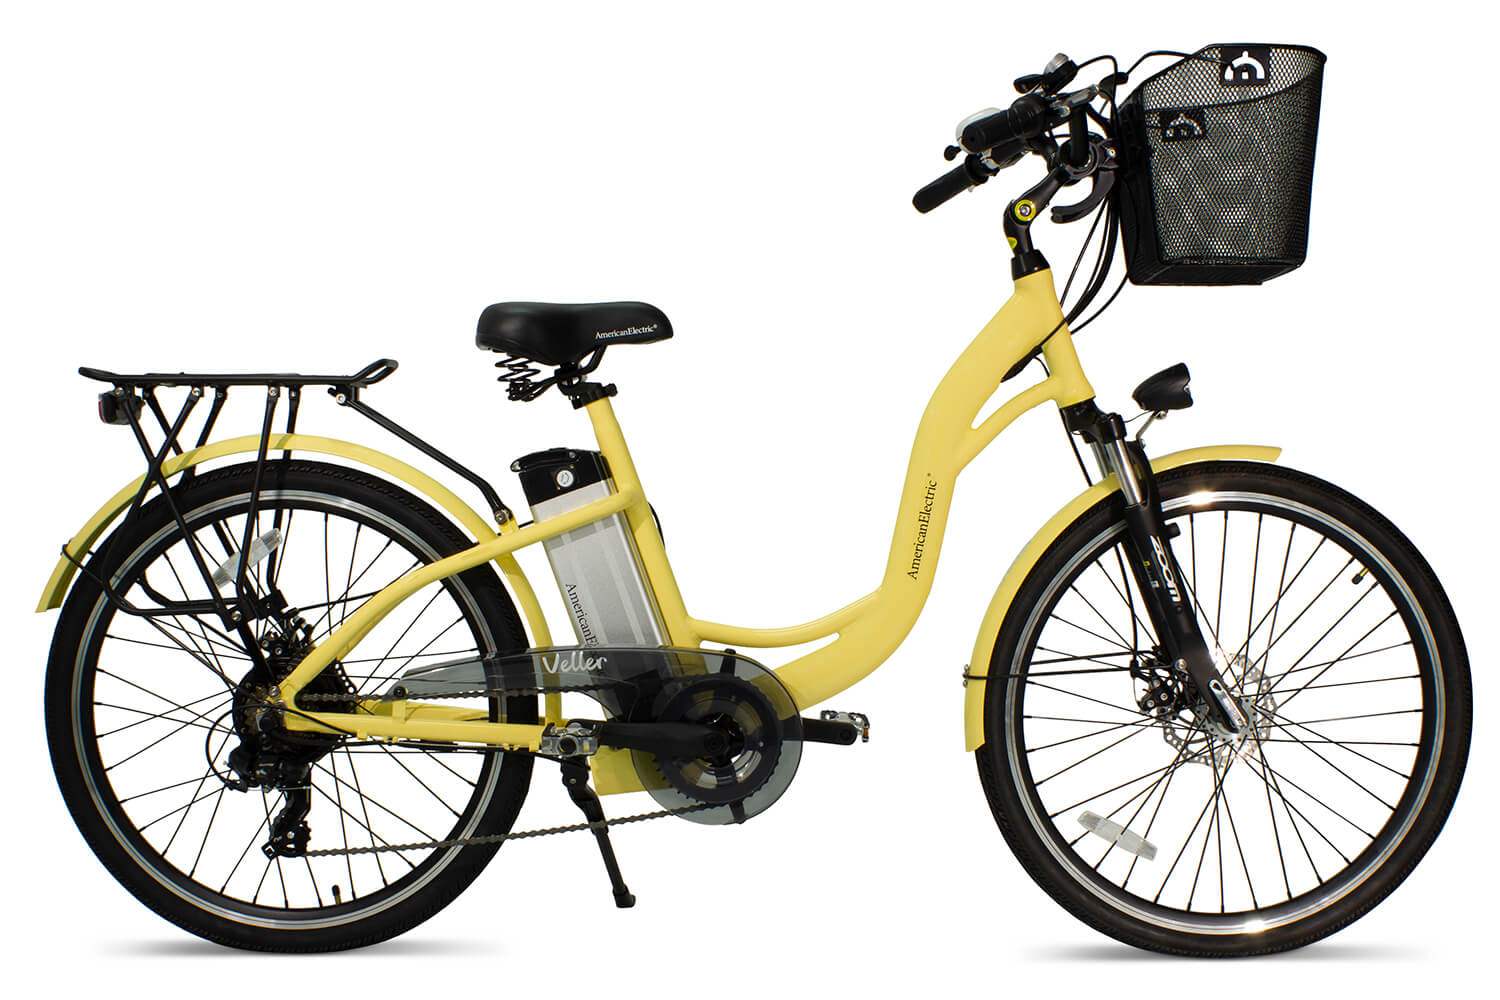 AmericanElectric Veller 2021 Step Through City Electric Bike Ivory